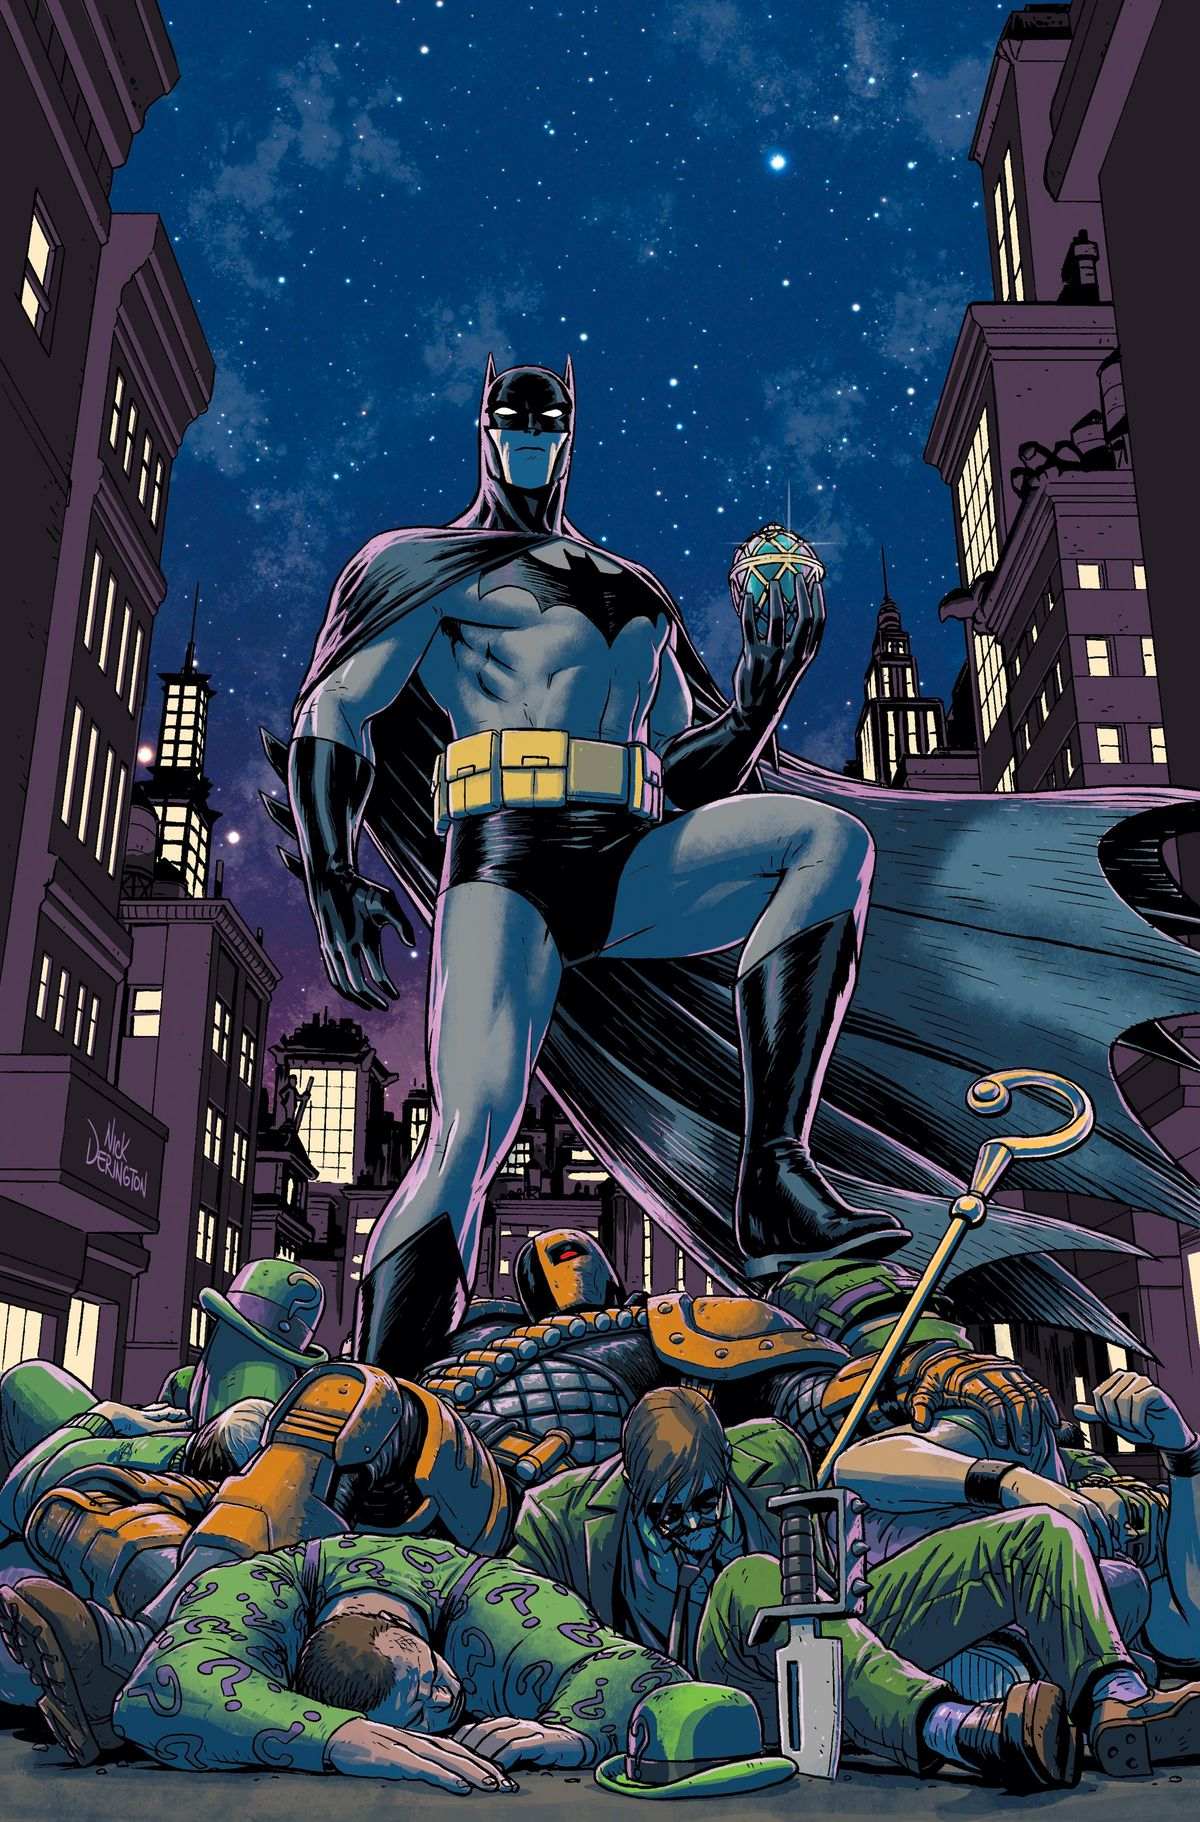 Batman stands over a pile of unconscious Riddler doppelgängers and Deathstroke, holding a Fabergé egg, against a starry sky. His costume is black and grey, with a grey bat symbol with no oval.